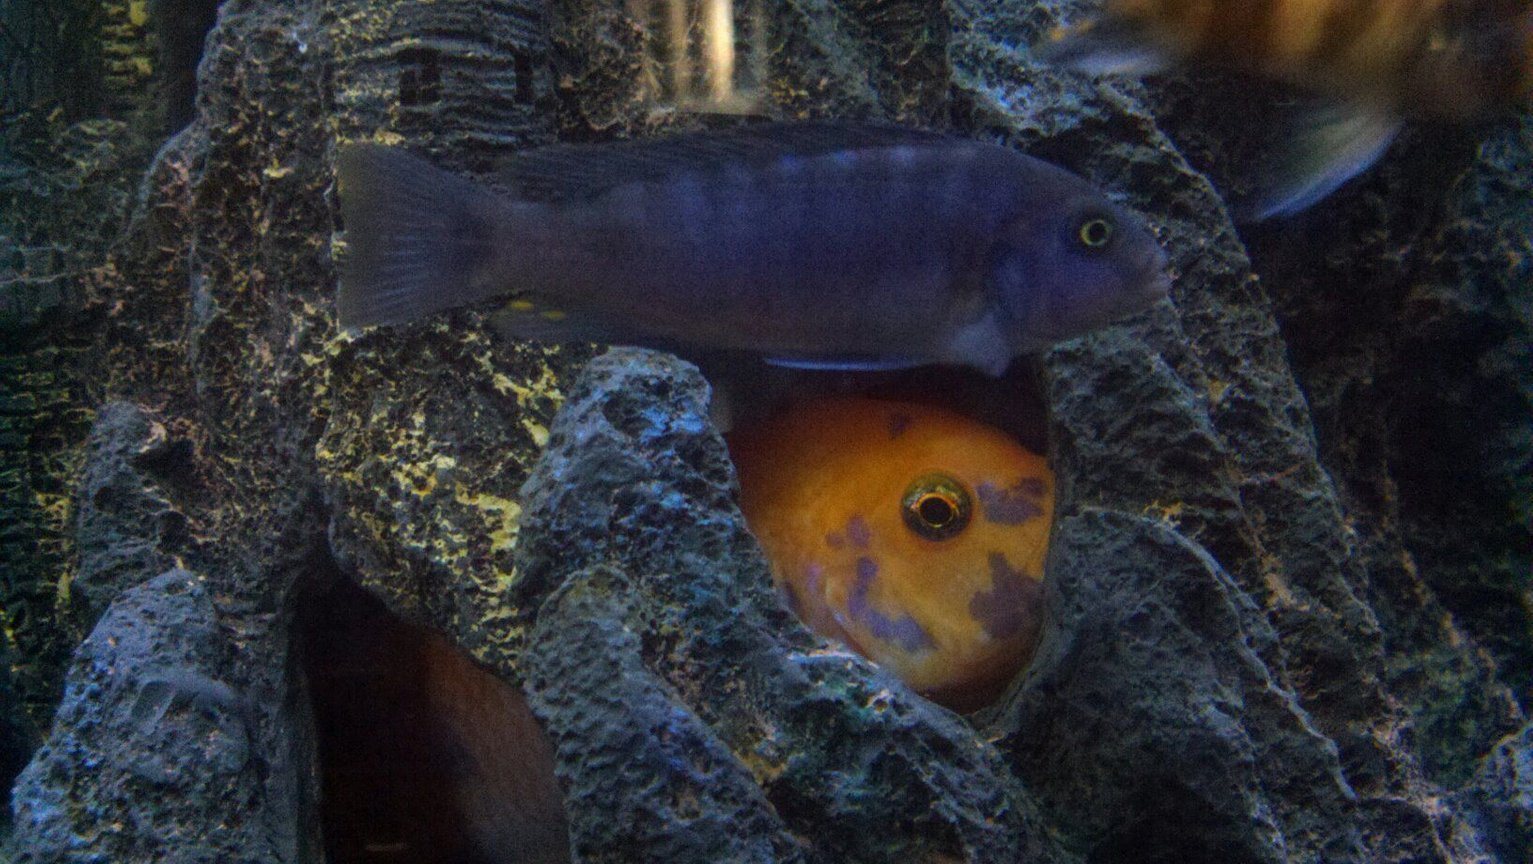 freshwater fish - aulonocara nyassae - blue peacock cichlid stocking in 100 gallons tank